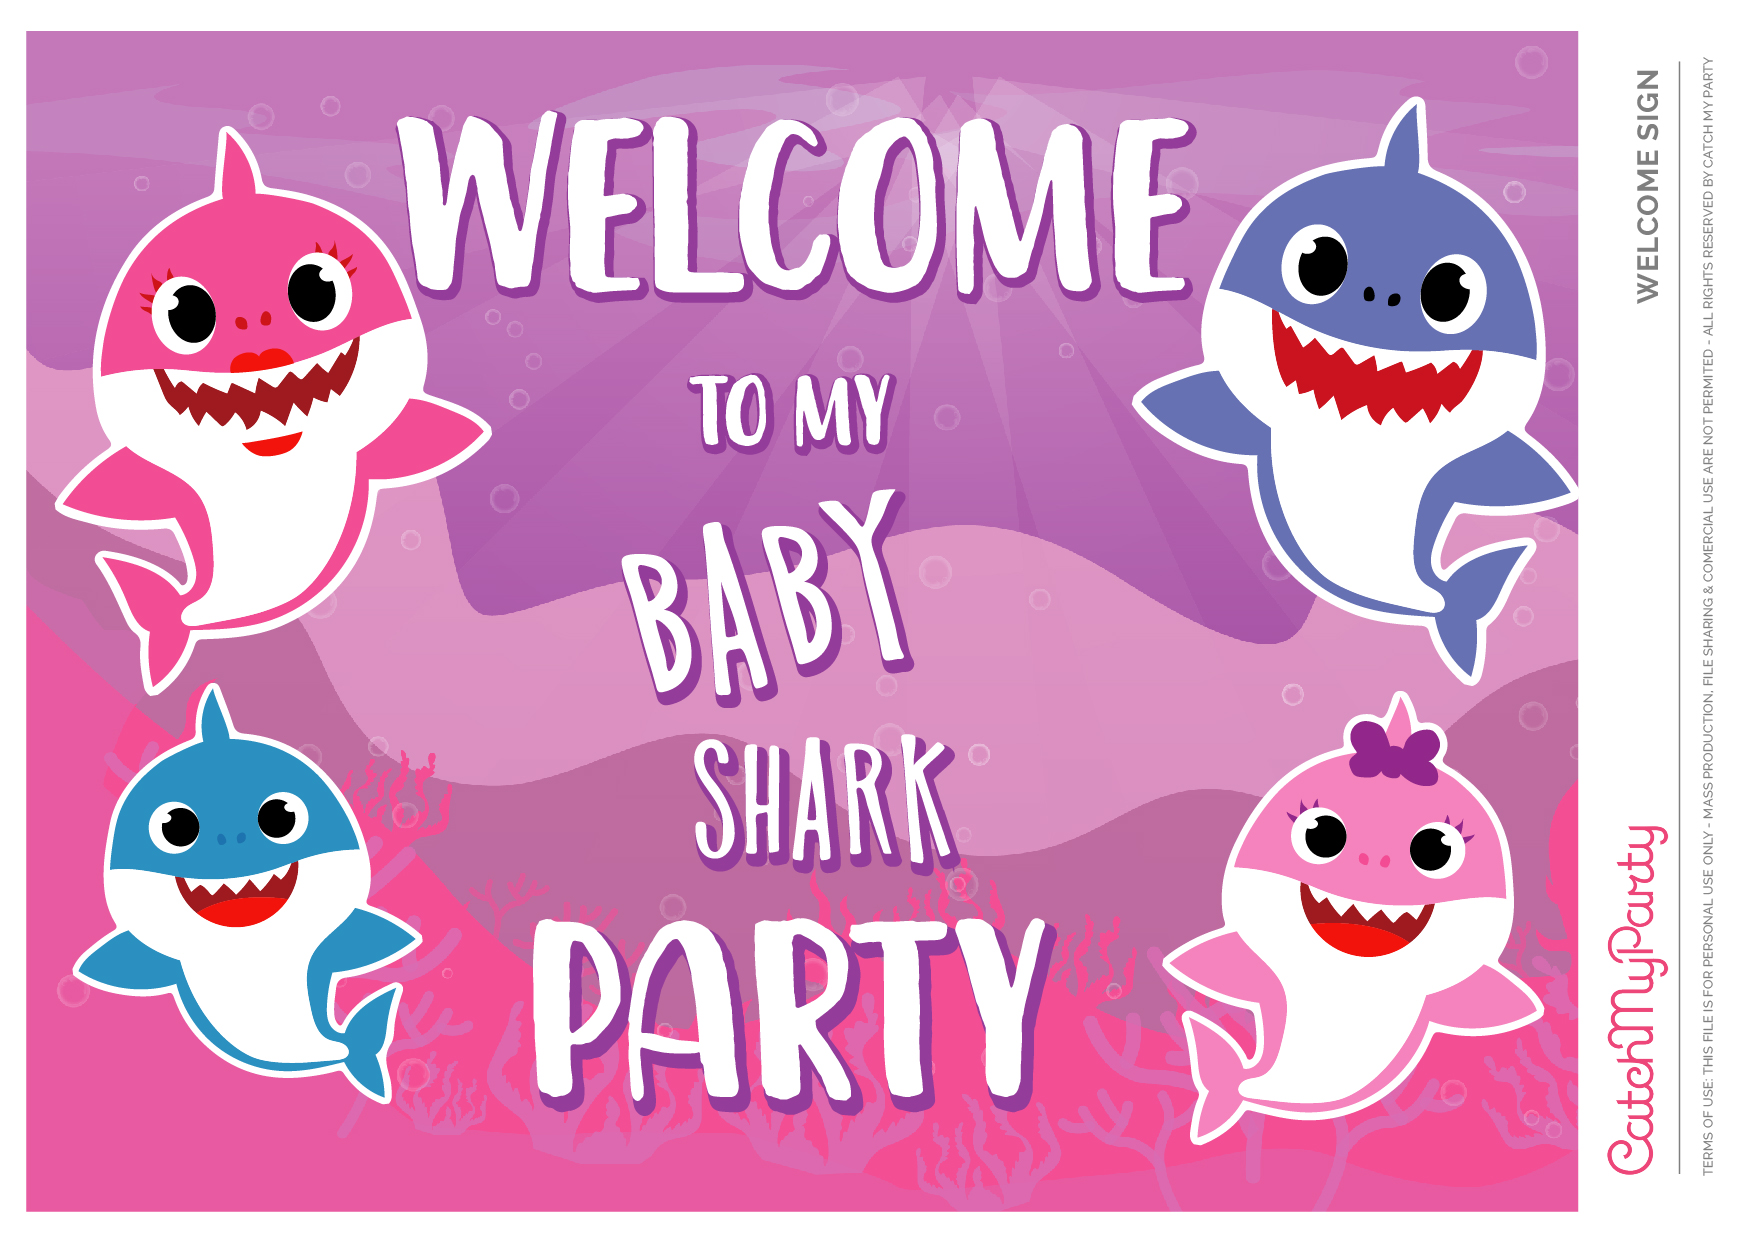 Download These Free Baby Shark Party Printables